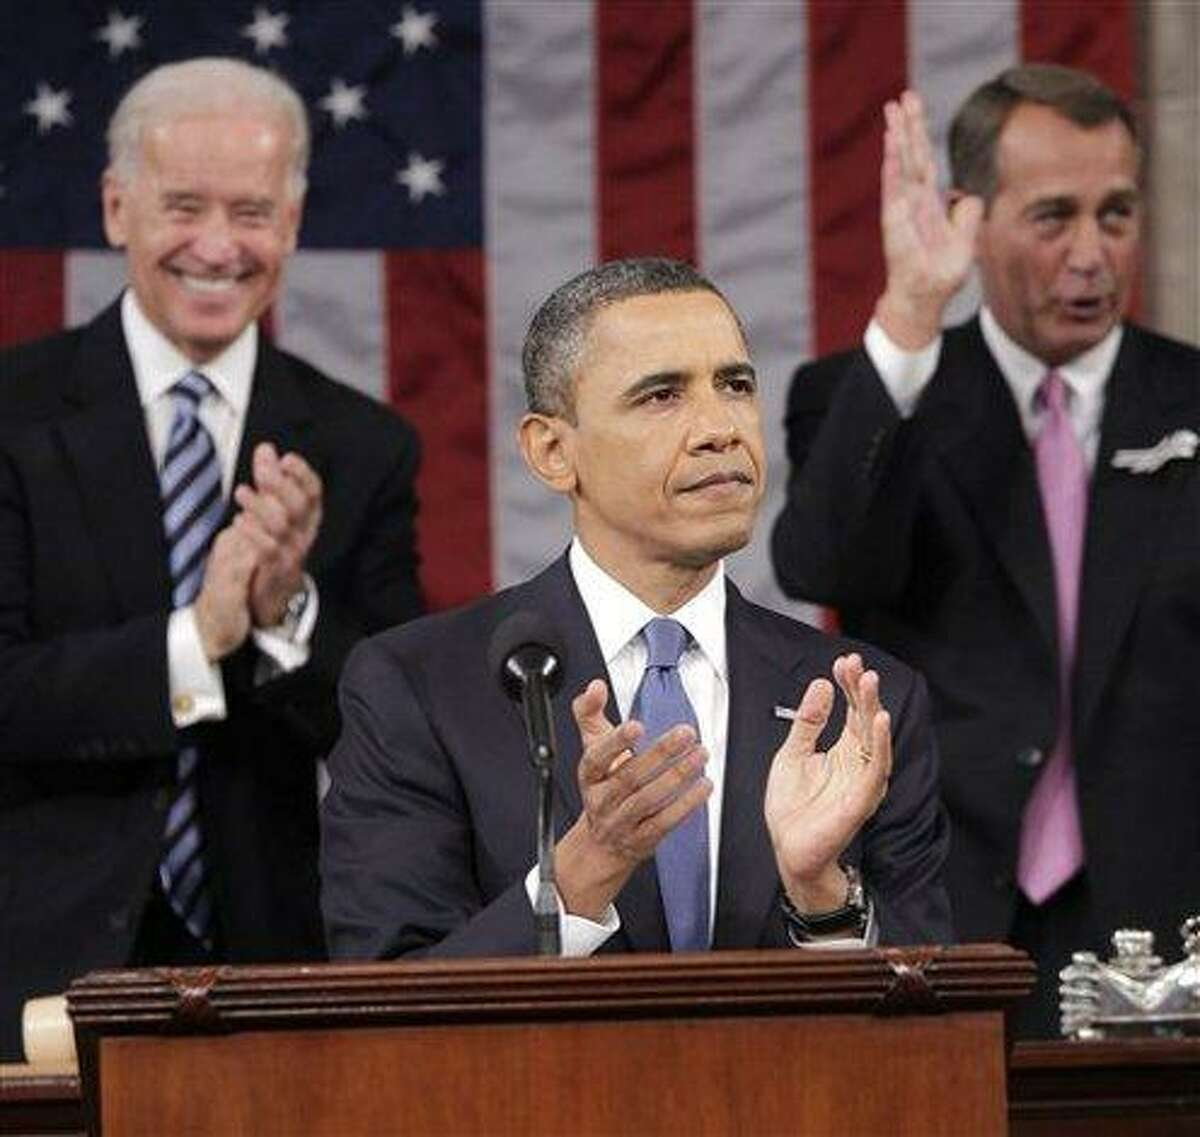 AP Obama joins Vice President Joe Biden, left, and Speaker of the House John Boehner, in applause before delivering his State of the Union address Tuesday night.